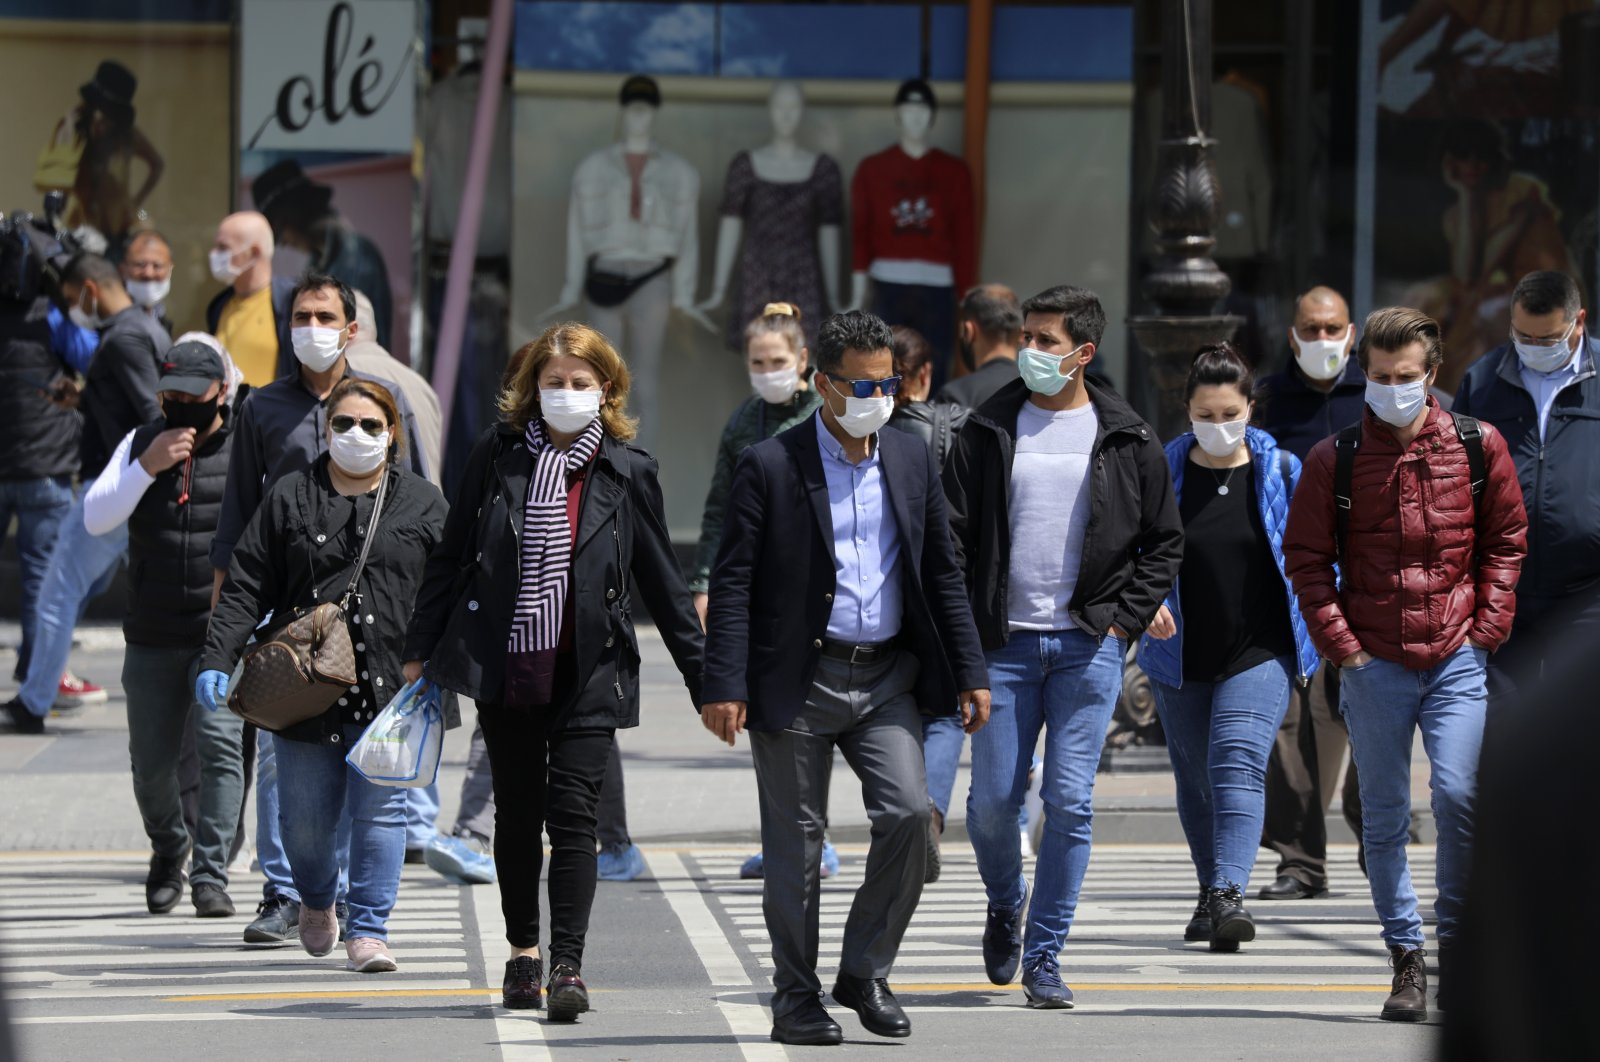 People wearing face masks for protection against the coronavirus walk in a busy street, in the capital Ankara, Turkey, May 5, 2020. (AP Photo)